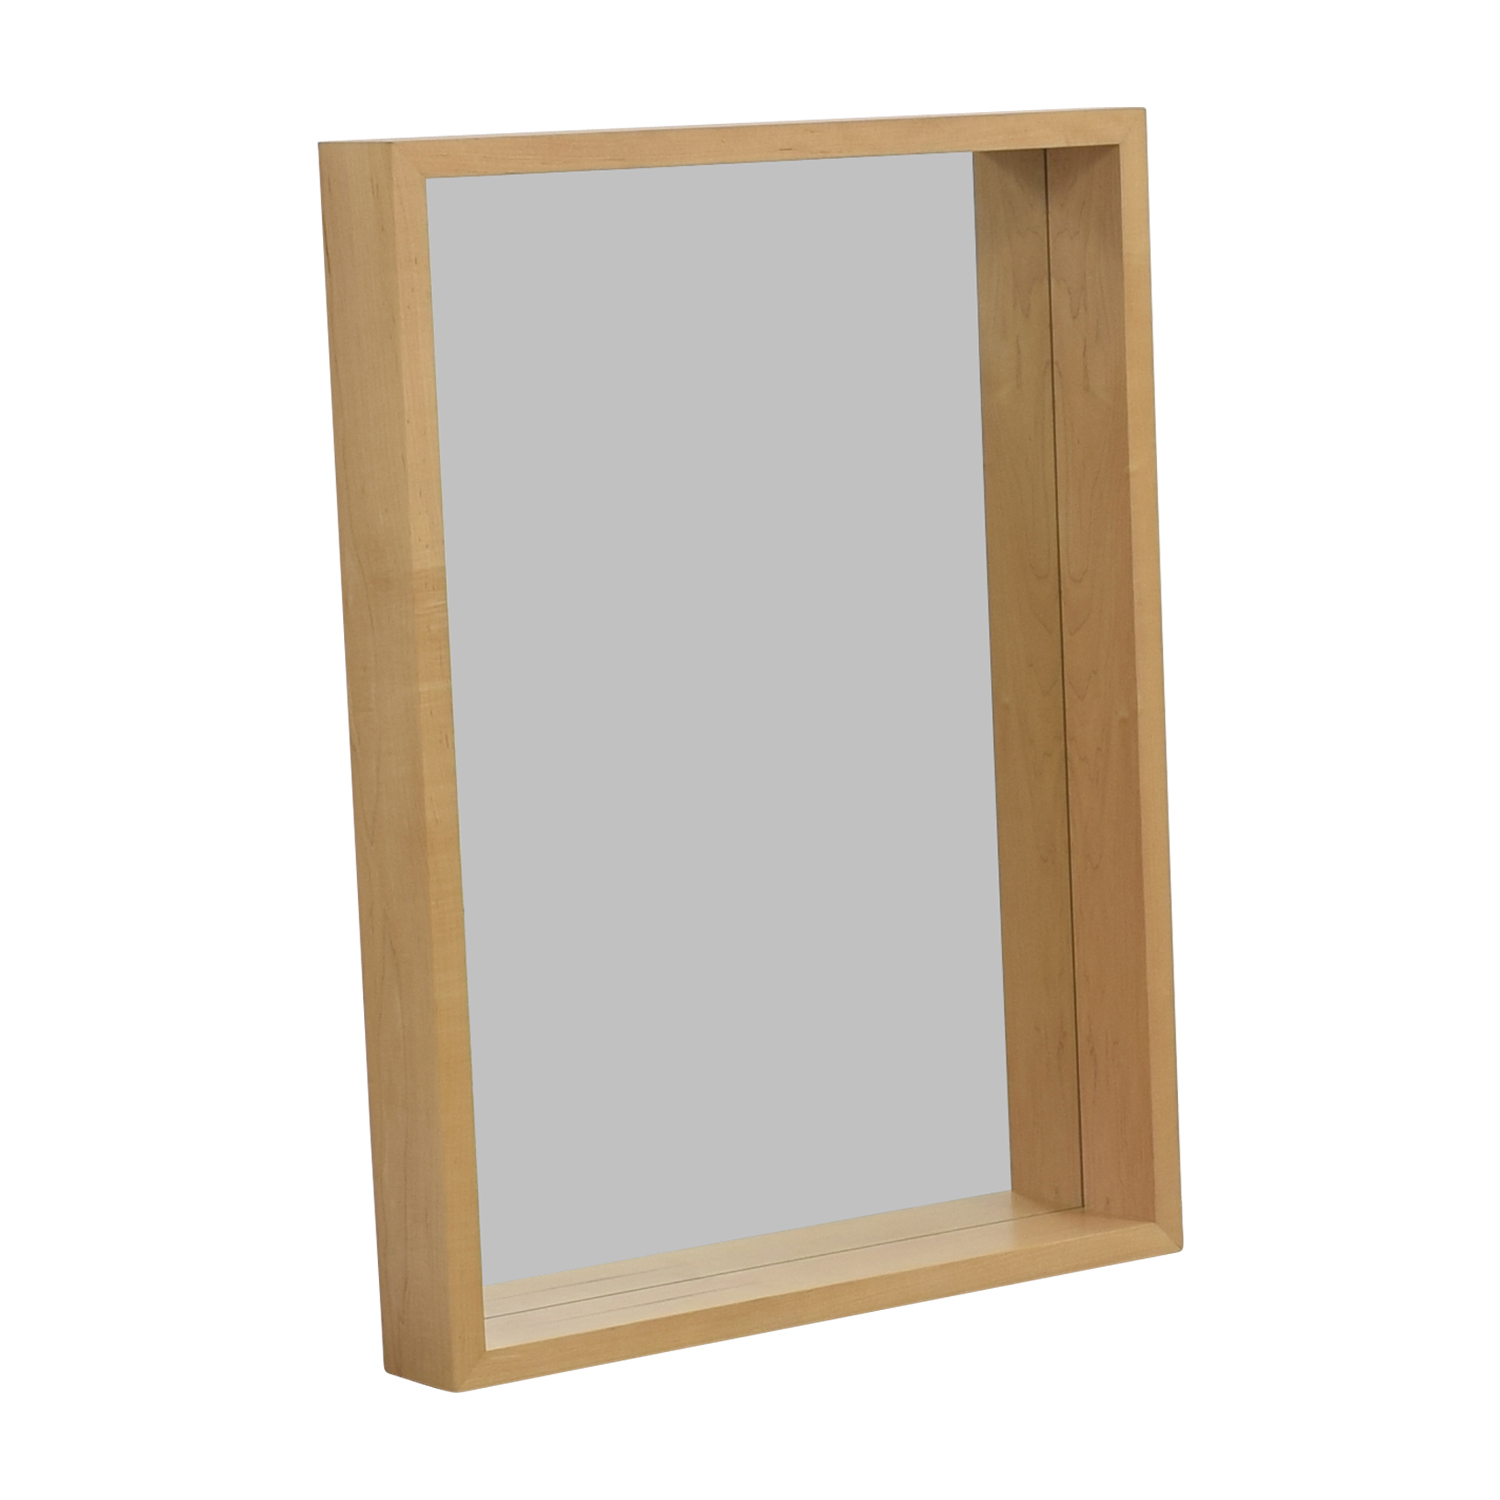 Room & Board Room & Board Natural Loft Wall Mirror used